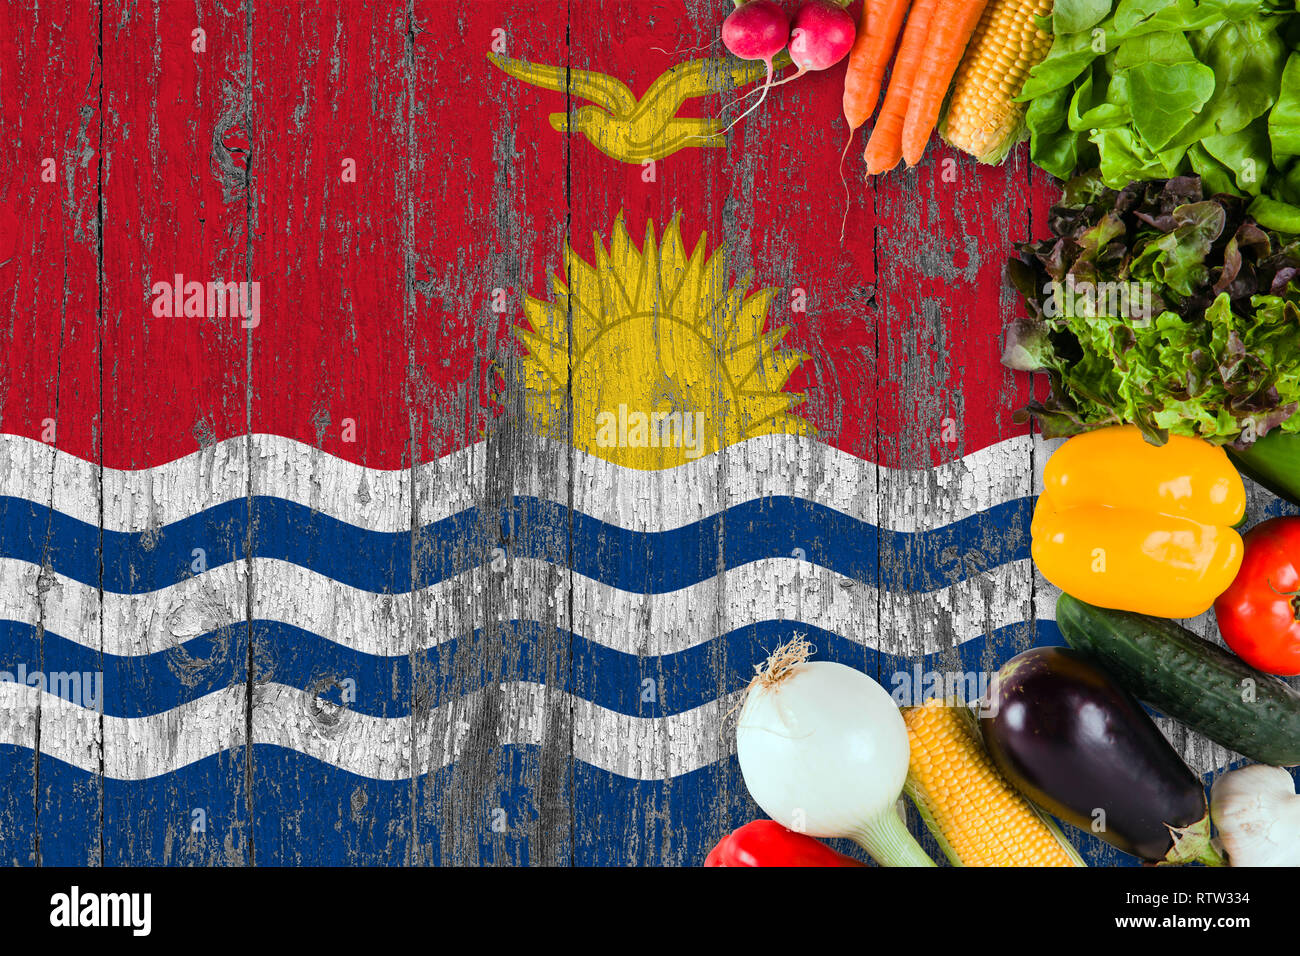 Fresh vegetables from Kiribati on table. Cooking concept on wooden flag background. - Stock Image